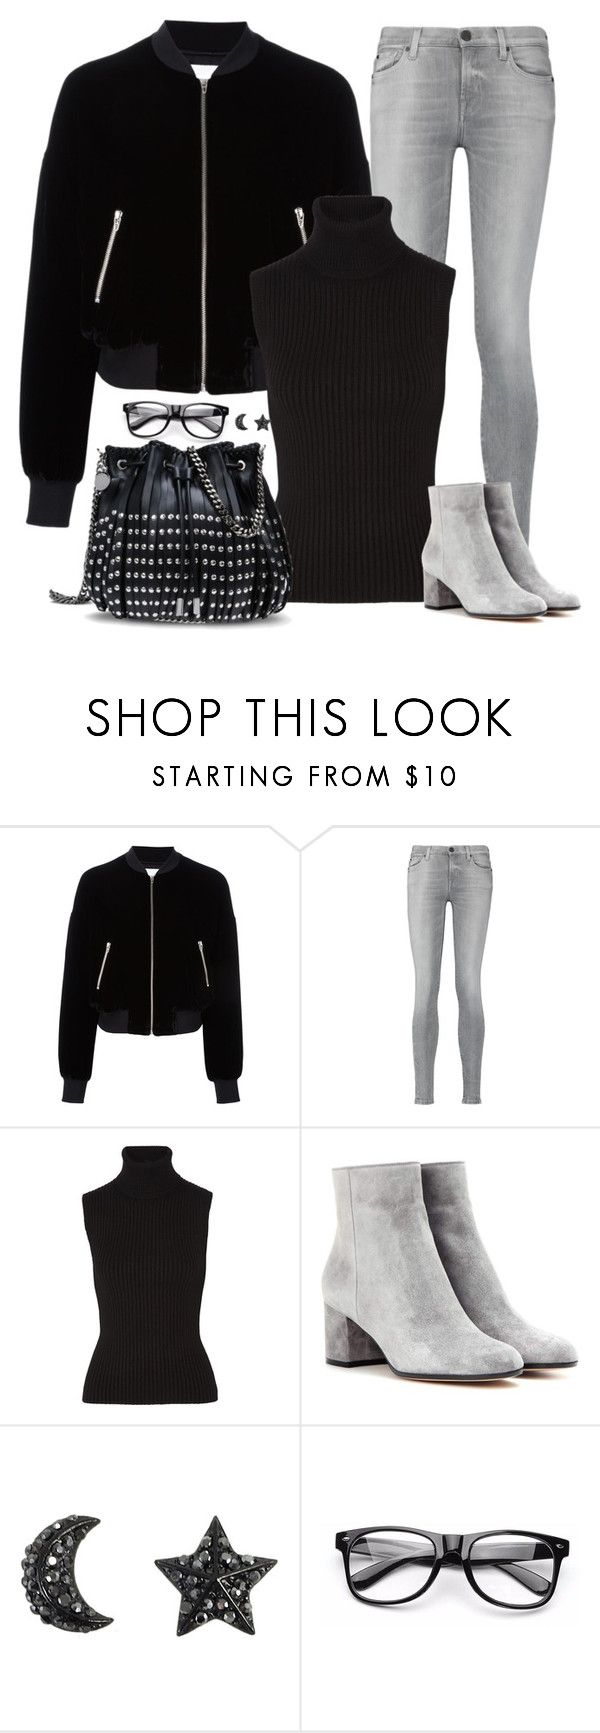 """""""Untitled 326 (Fall/Winter)"""" by maddkat ❤ liked on Polyvore featuring T By Alexander Wang, 7 For All Mankind, Michael Kors, Gianvito Rossi and STELLA McCARTNEY"""